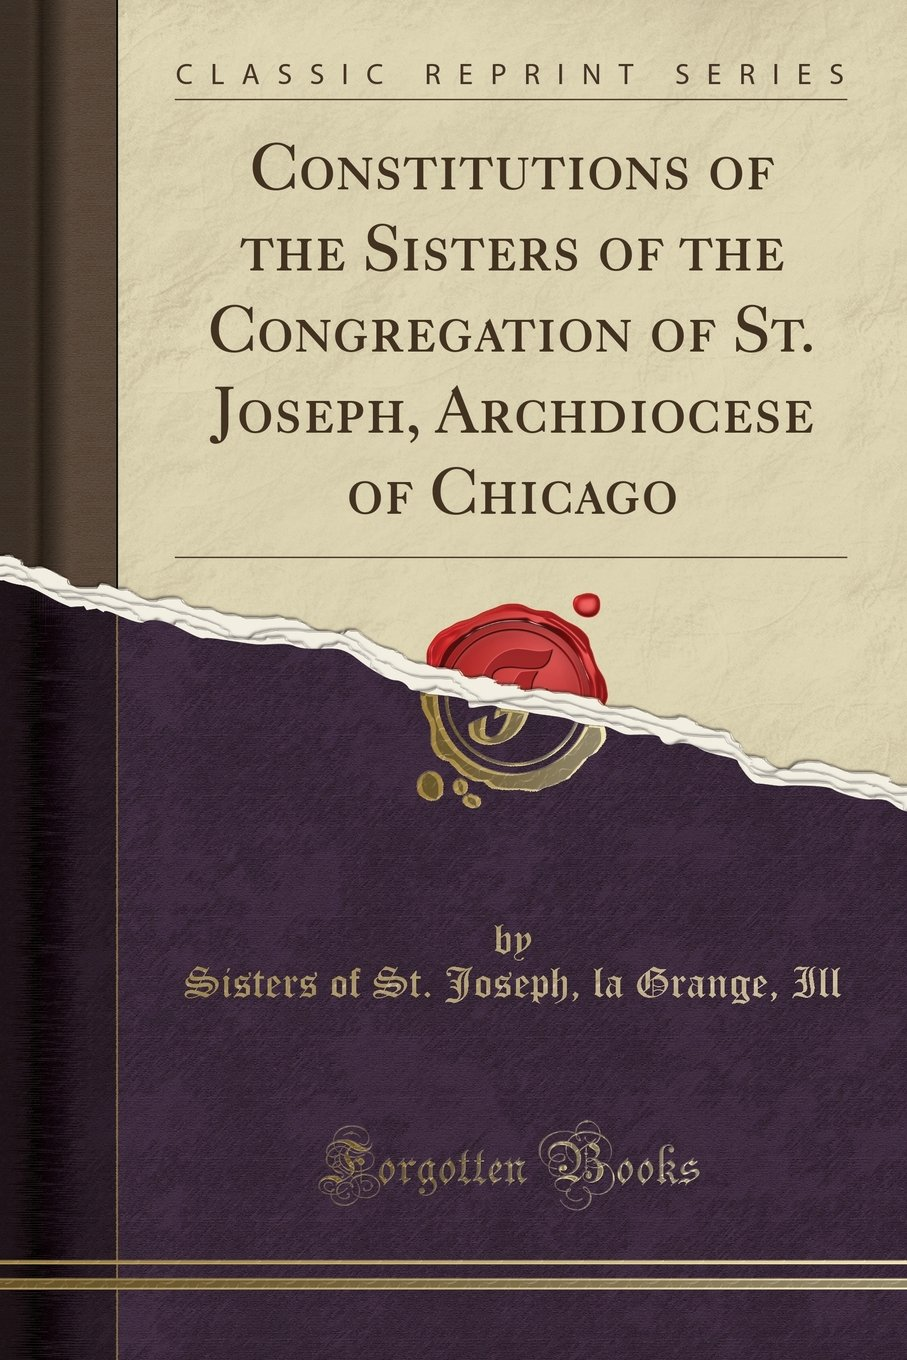 Read Online Constitutions of the Sisters of the Congregation of St. Joseph, Archdiocese of Chicago (Classic Reprint) ebook